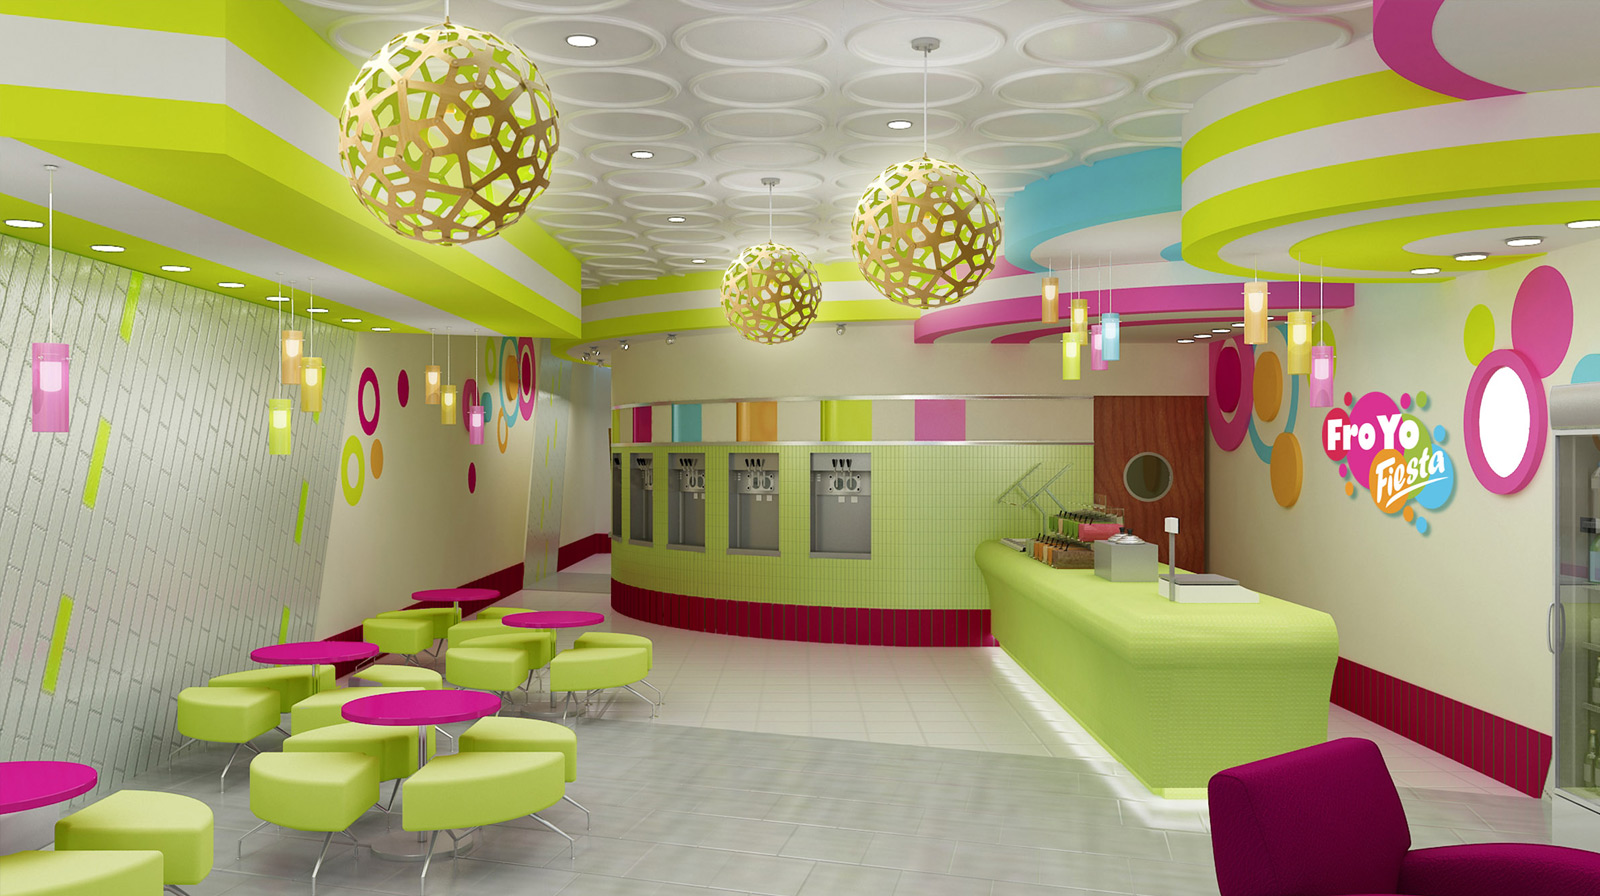 Froyo Fiesta Yogurt Shop Interior Design